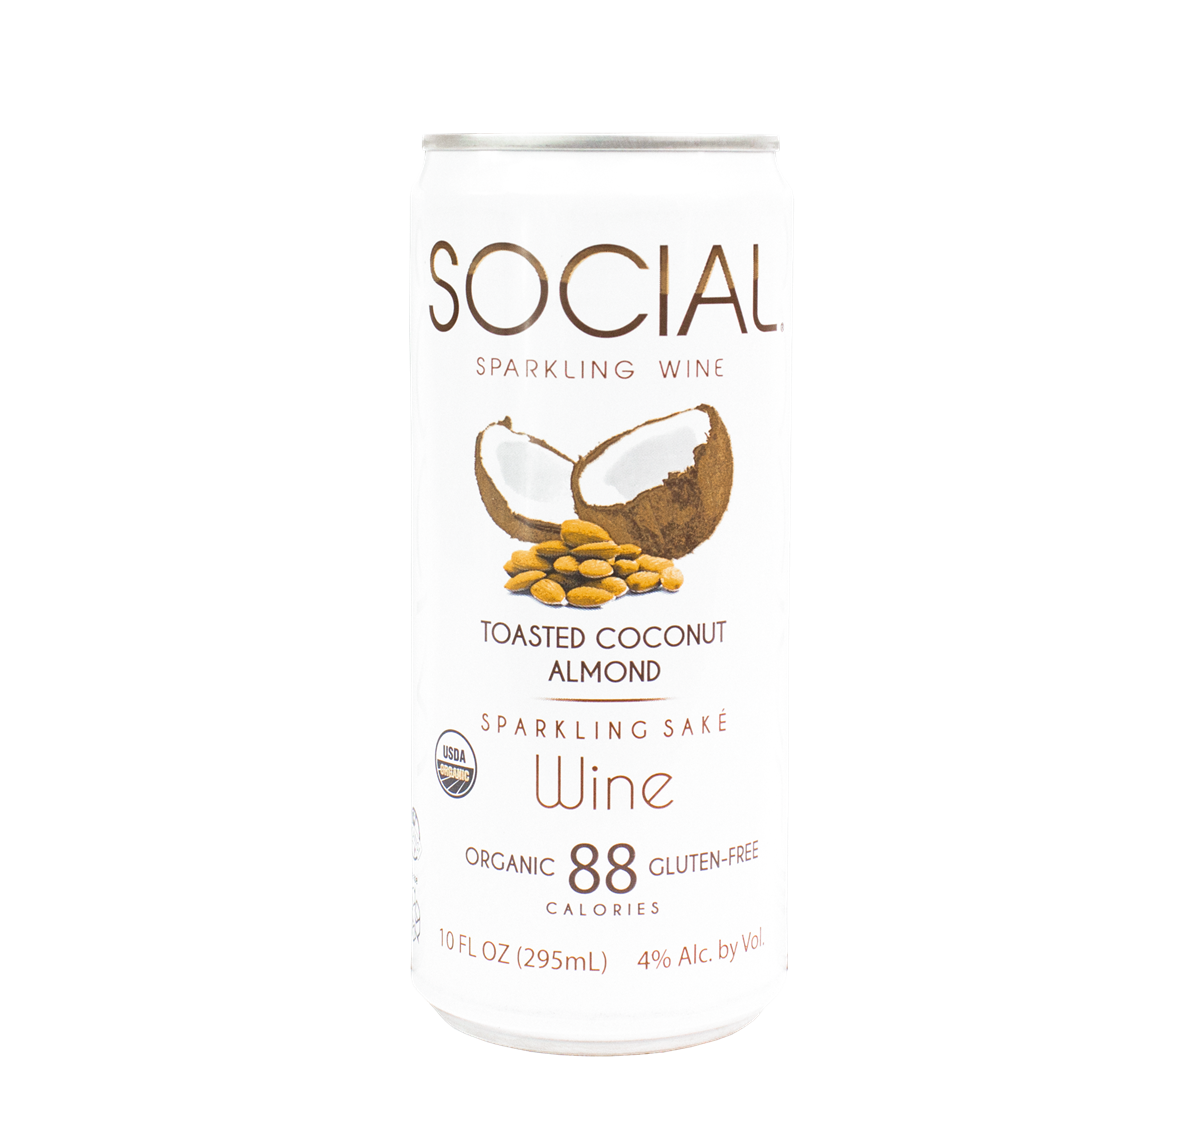 SOCIAL Toasted Coconut Almond Sparkling Wine